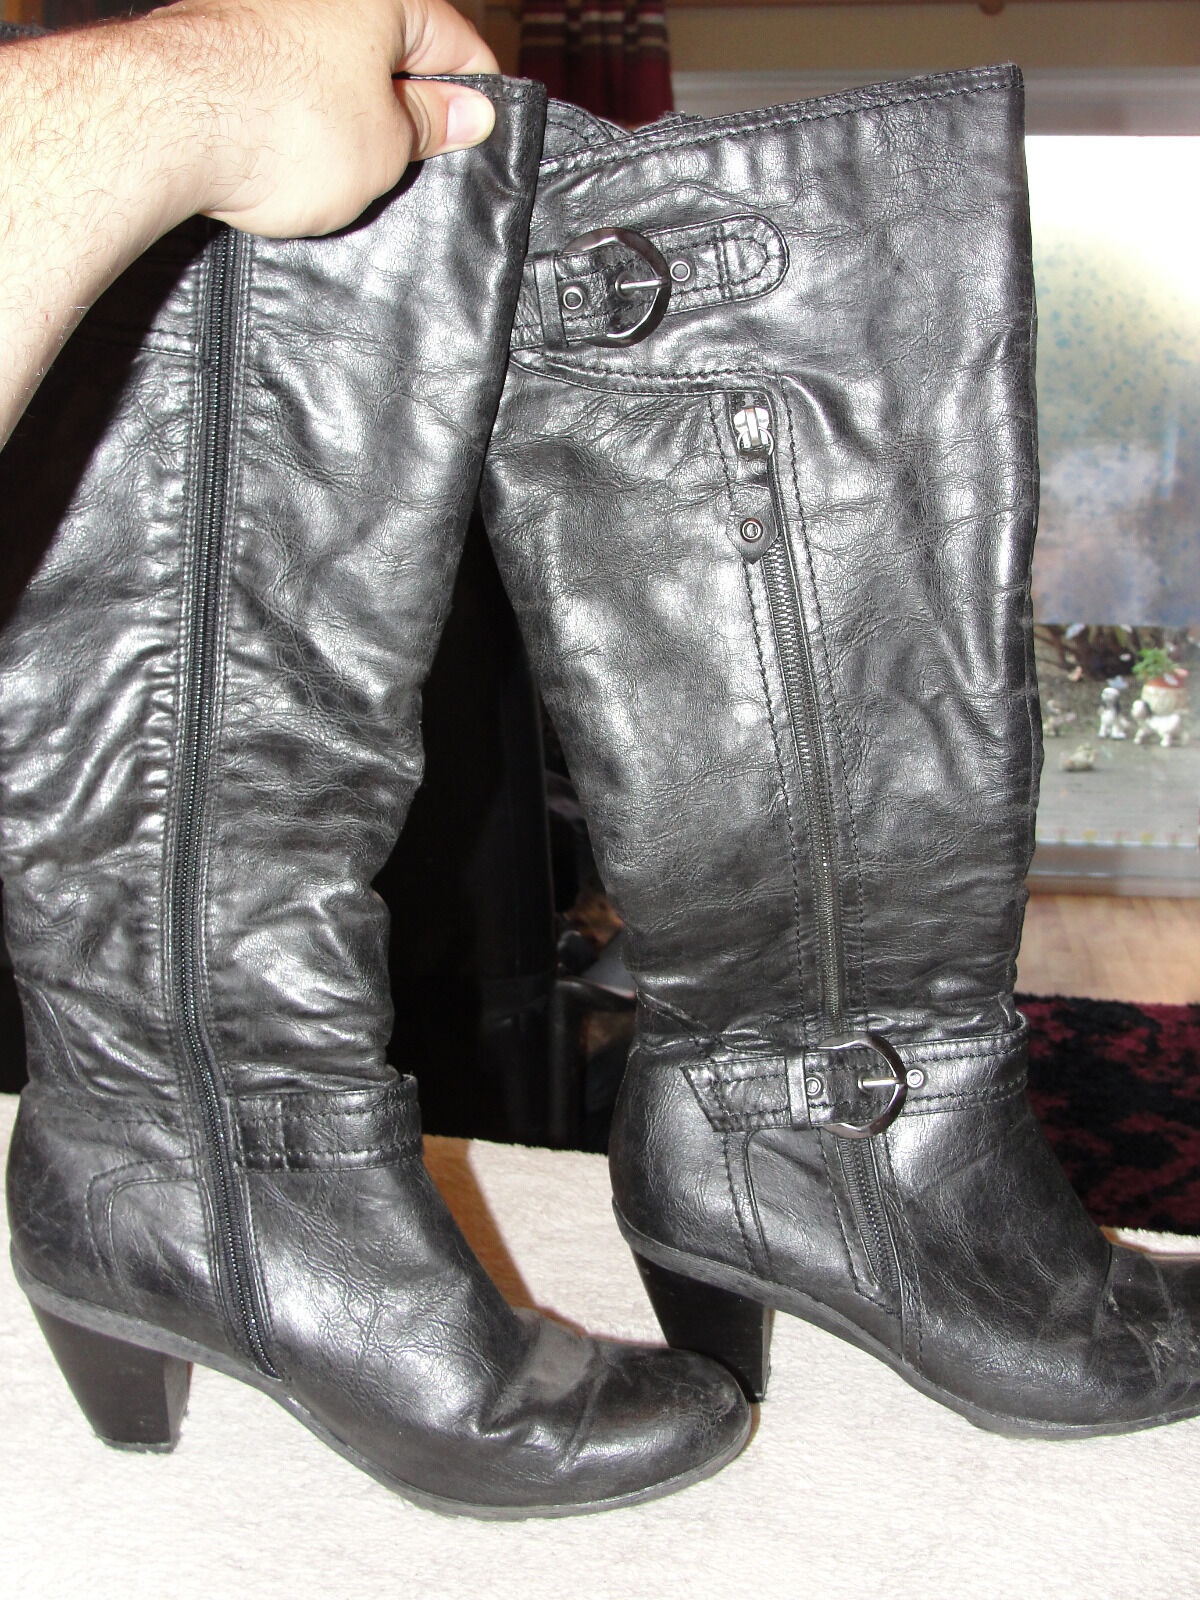 MARCO TOZZI BOOTS - SIZE 39